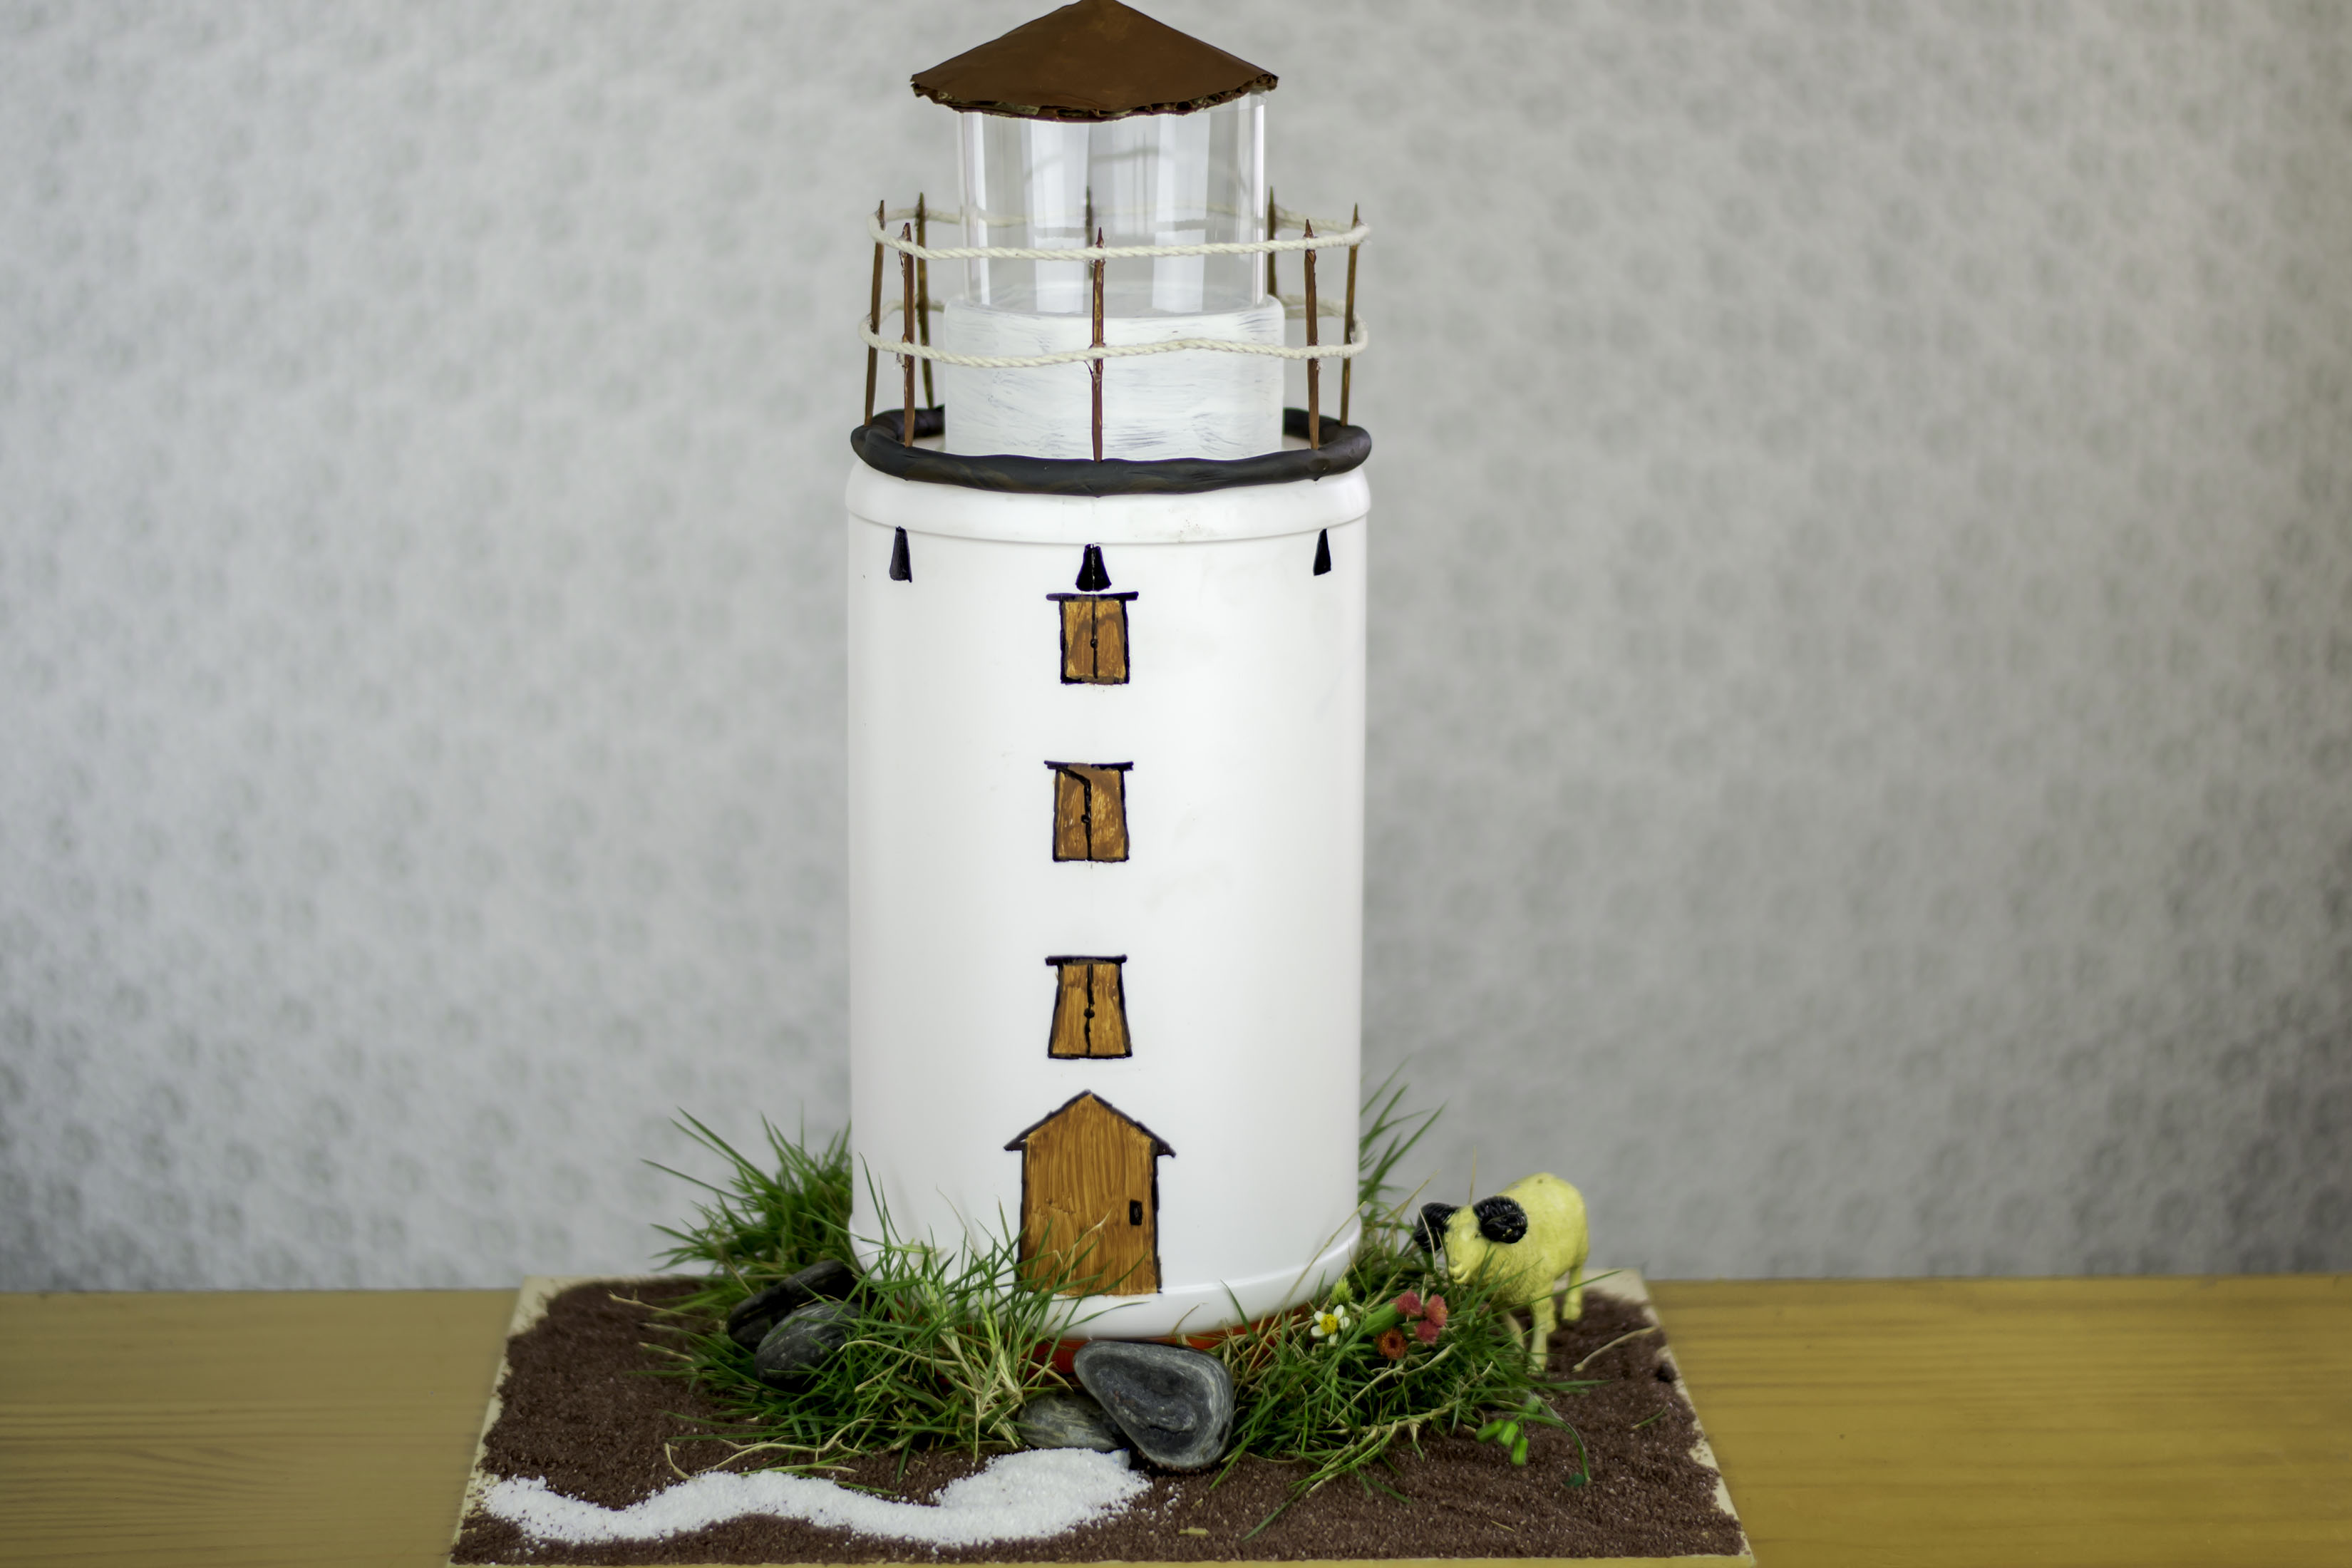 How to Build a Model Lighthouse for a School Project | Sciencing